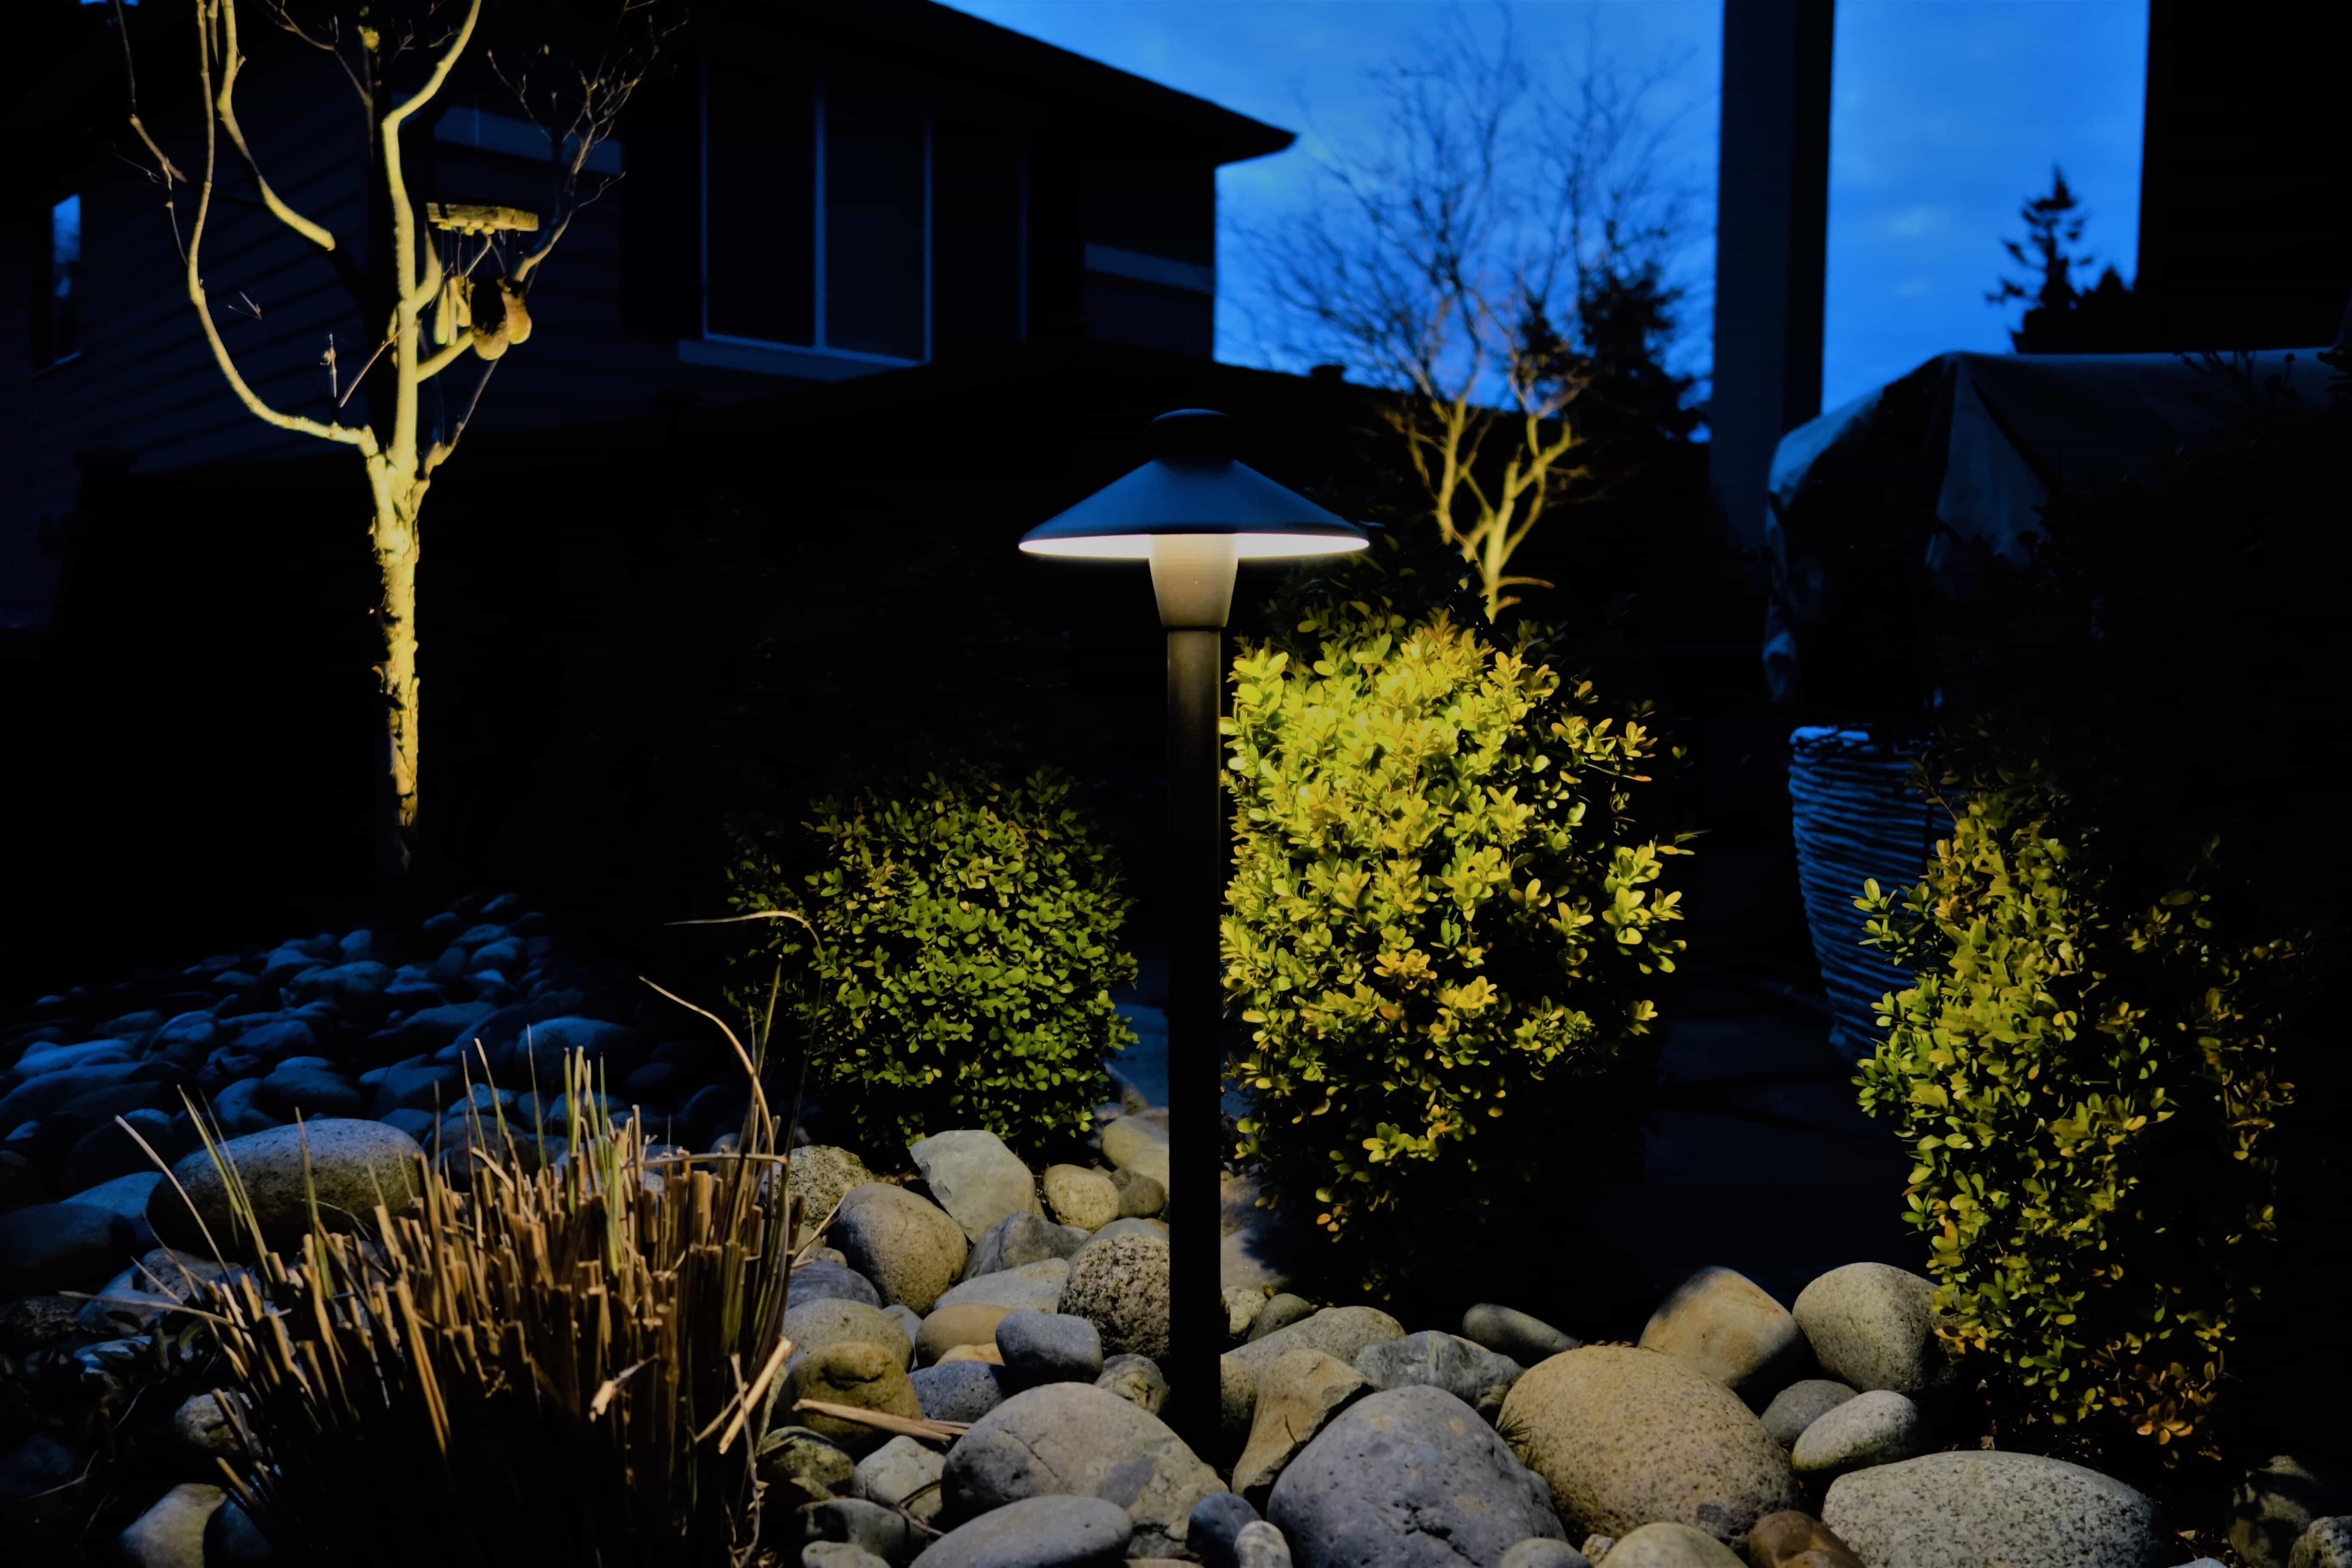 Rocks and greenery with landscape lighting